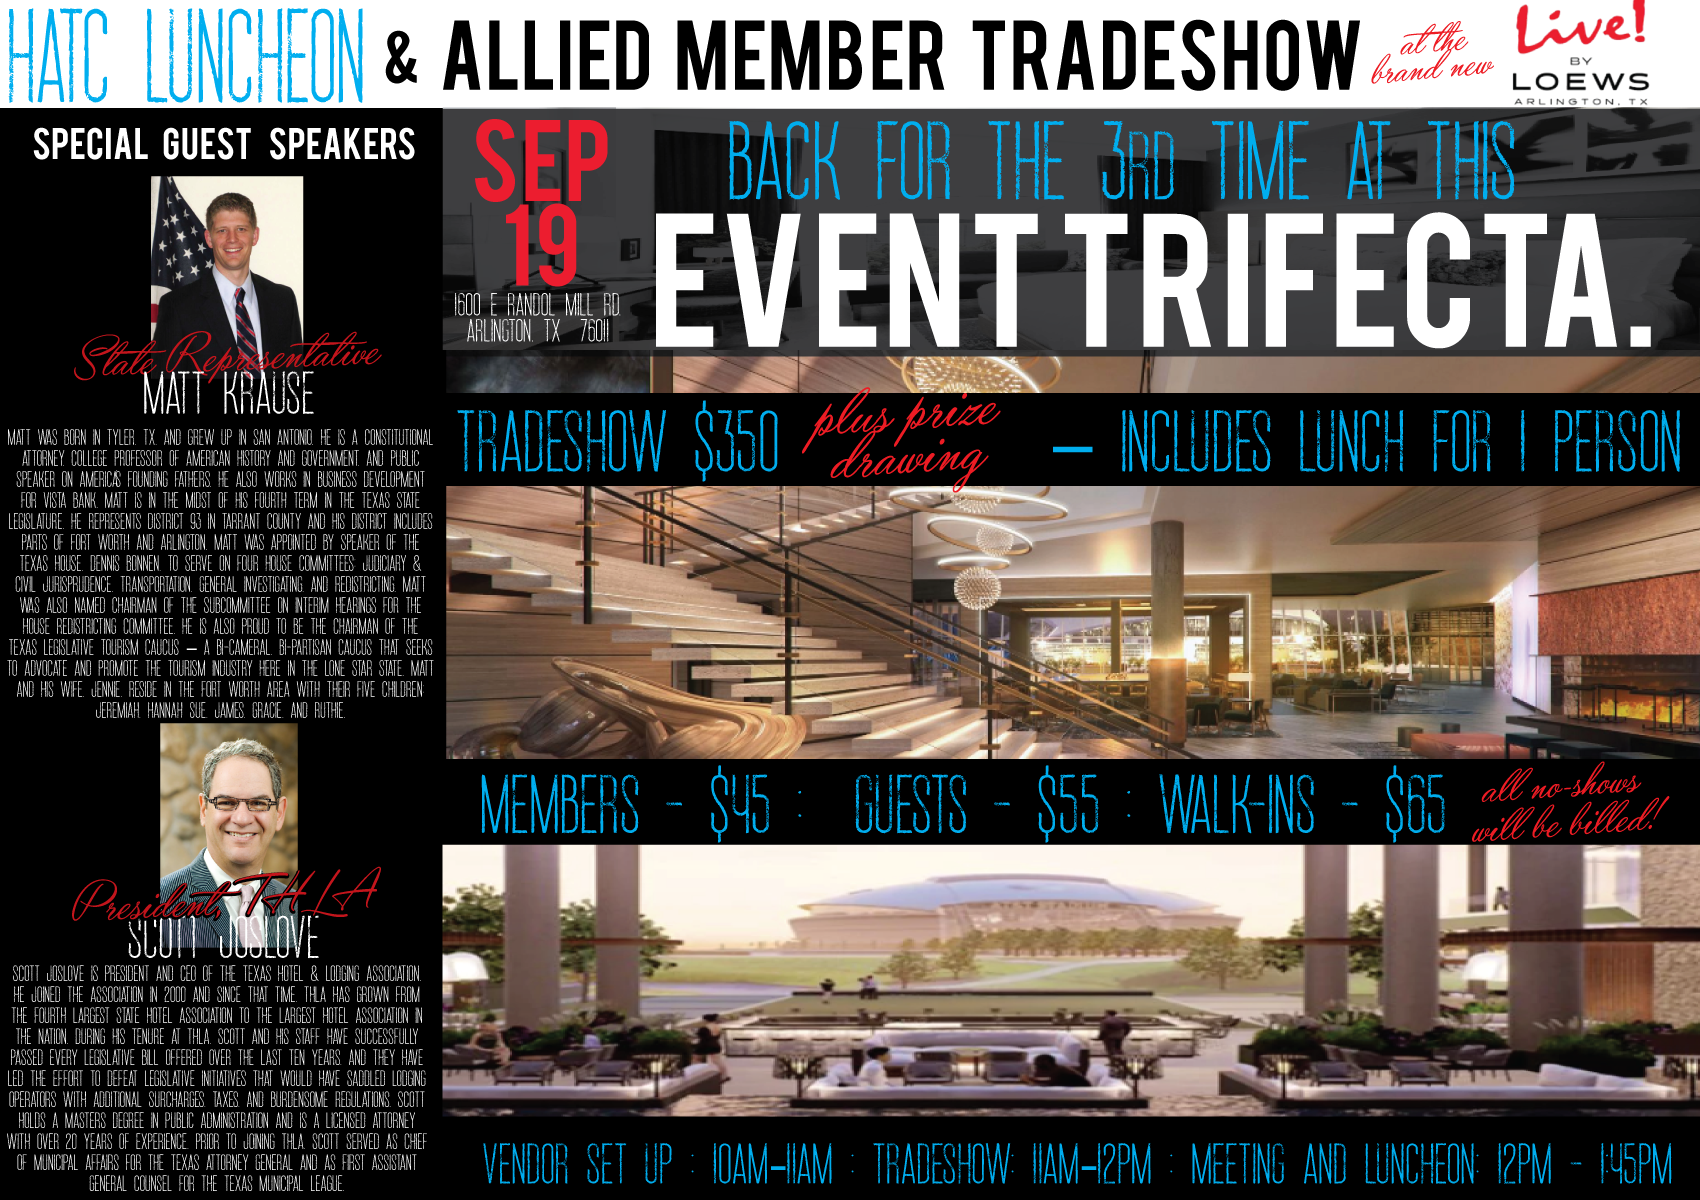 HATC Luncheon & Allied Member Tradeshow